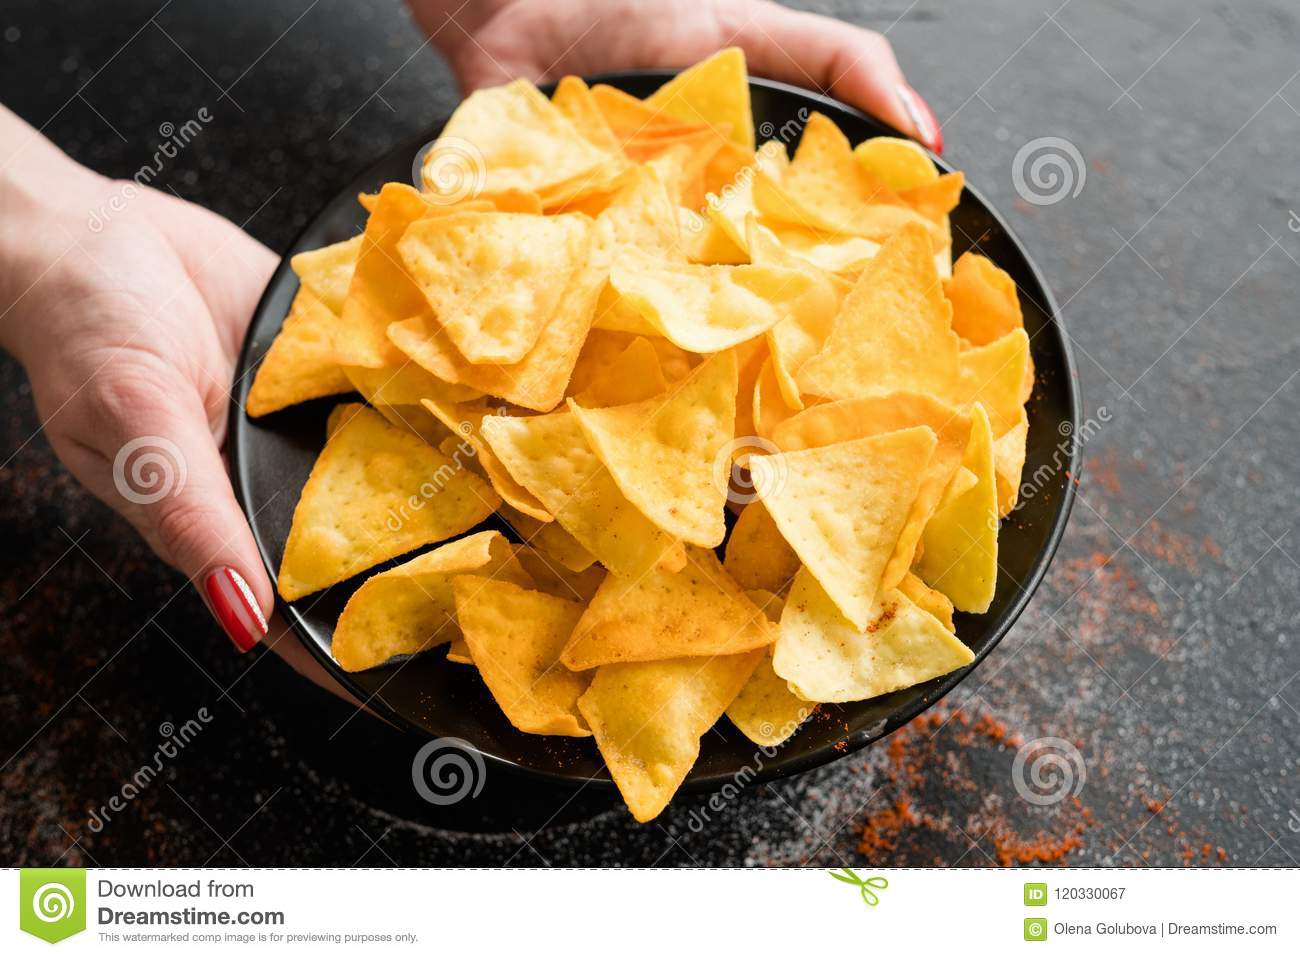 Fast food snack bad eating habit woman hands chips